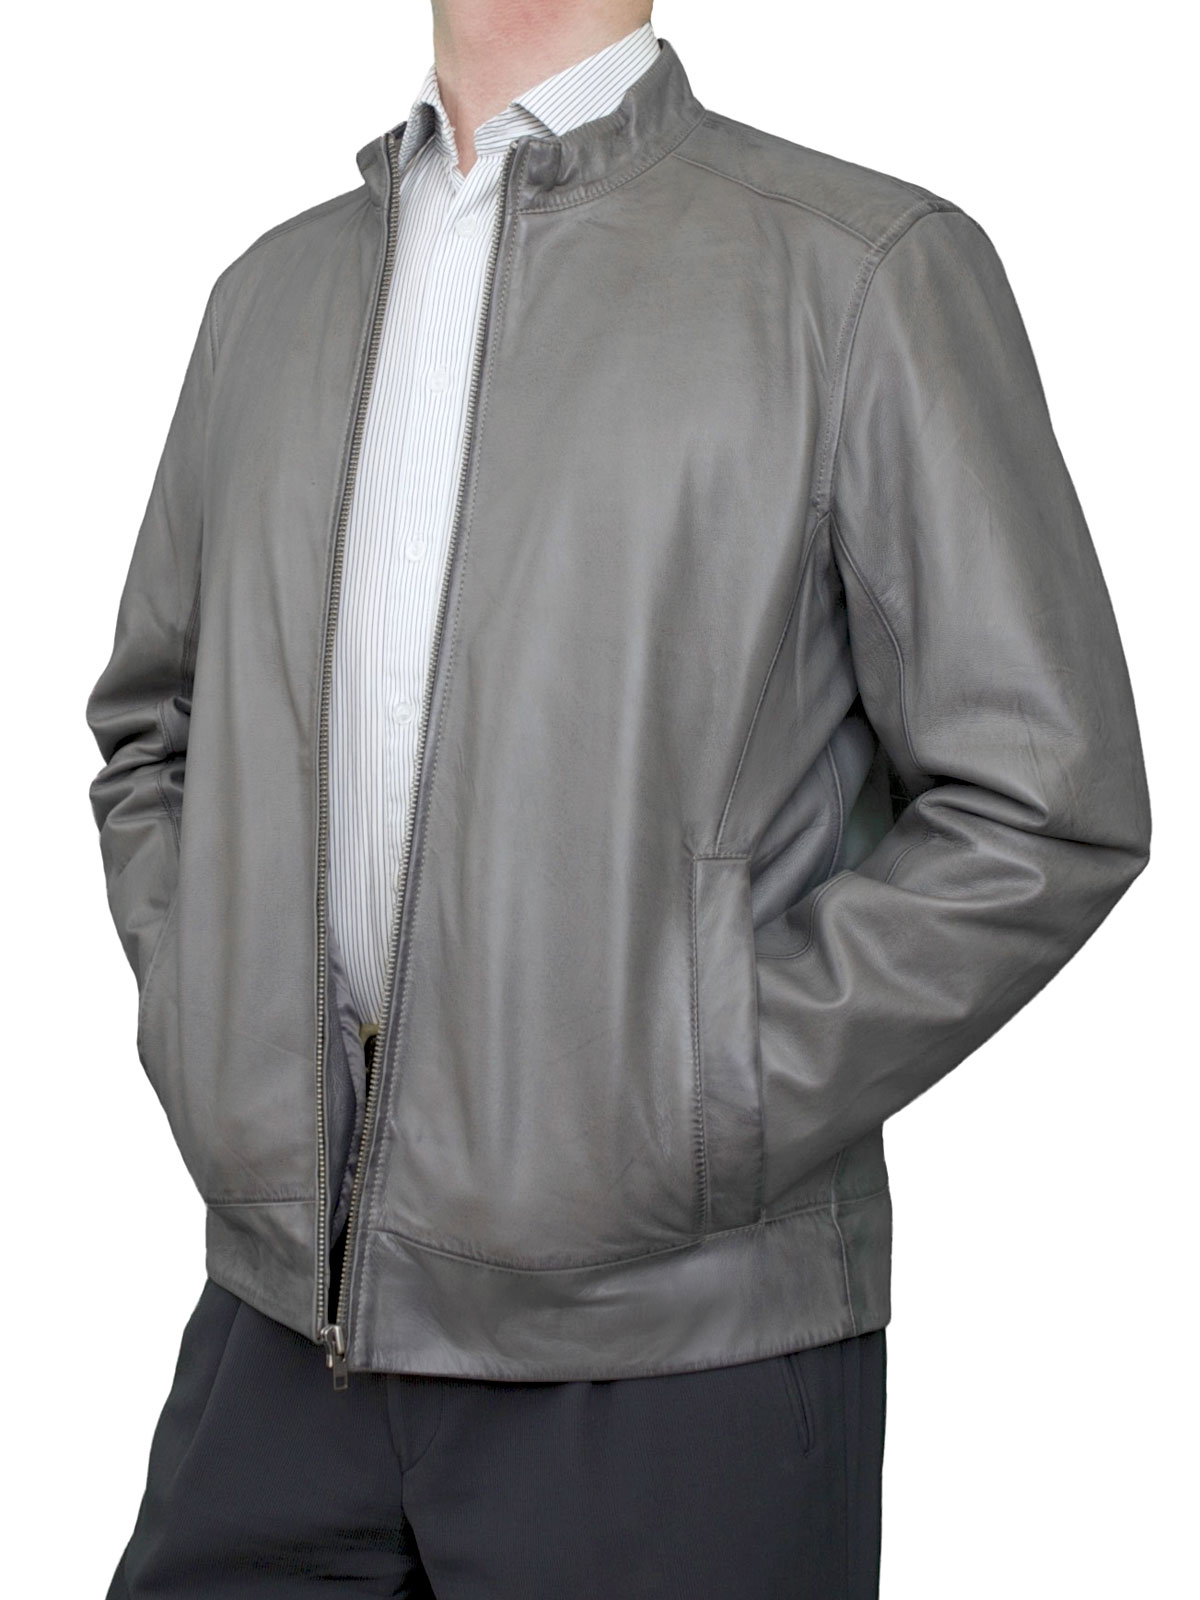 Mens Luxury Leather Bomber Jacket, grey